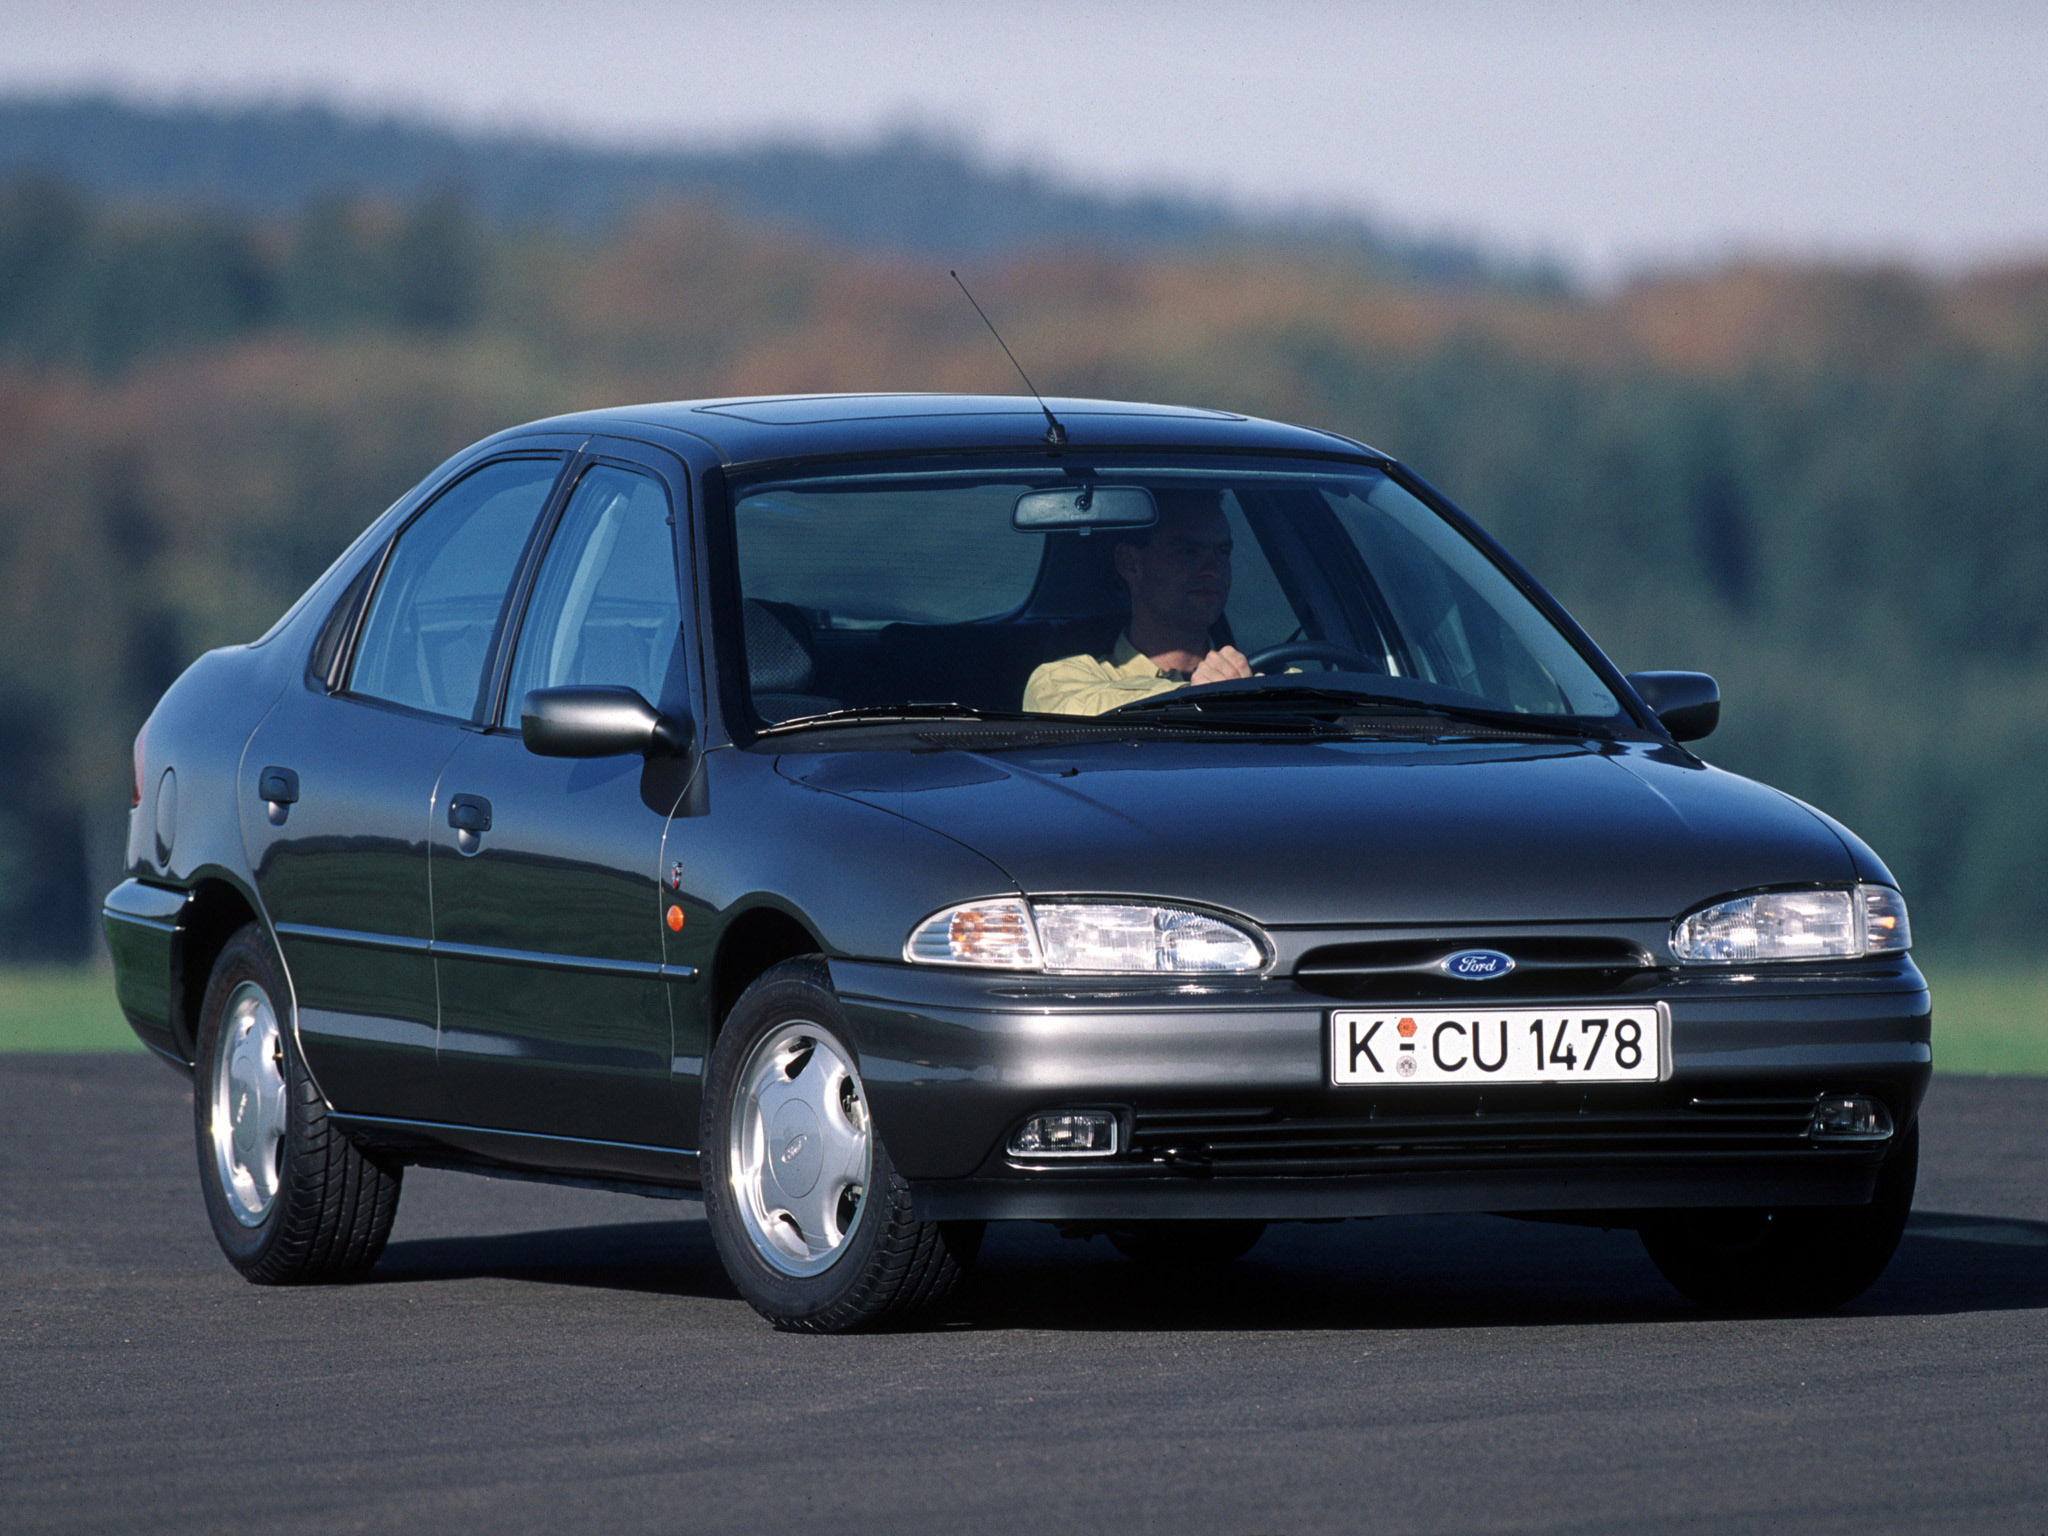 ford mondeo hatchback 1993 1996 ford mondeo hatchback 1993 1996 photo 01 car in pictures car. Black Bedroom Furniture Sets. Home Design Ideas